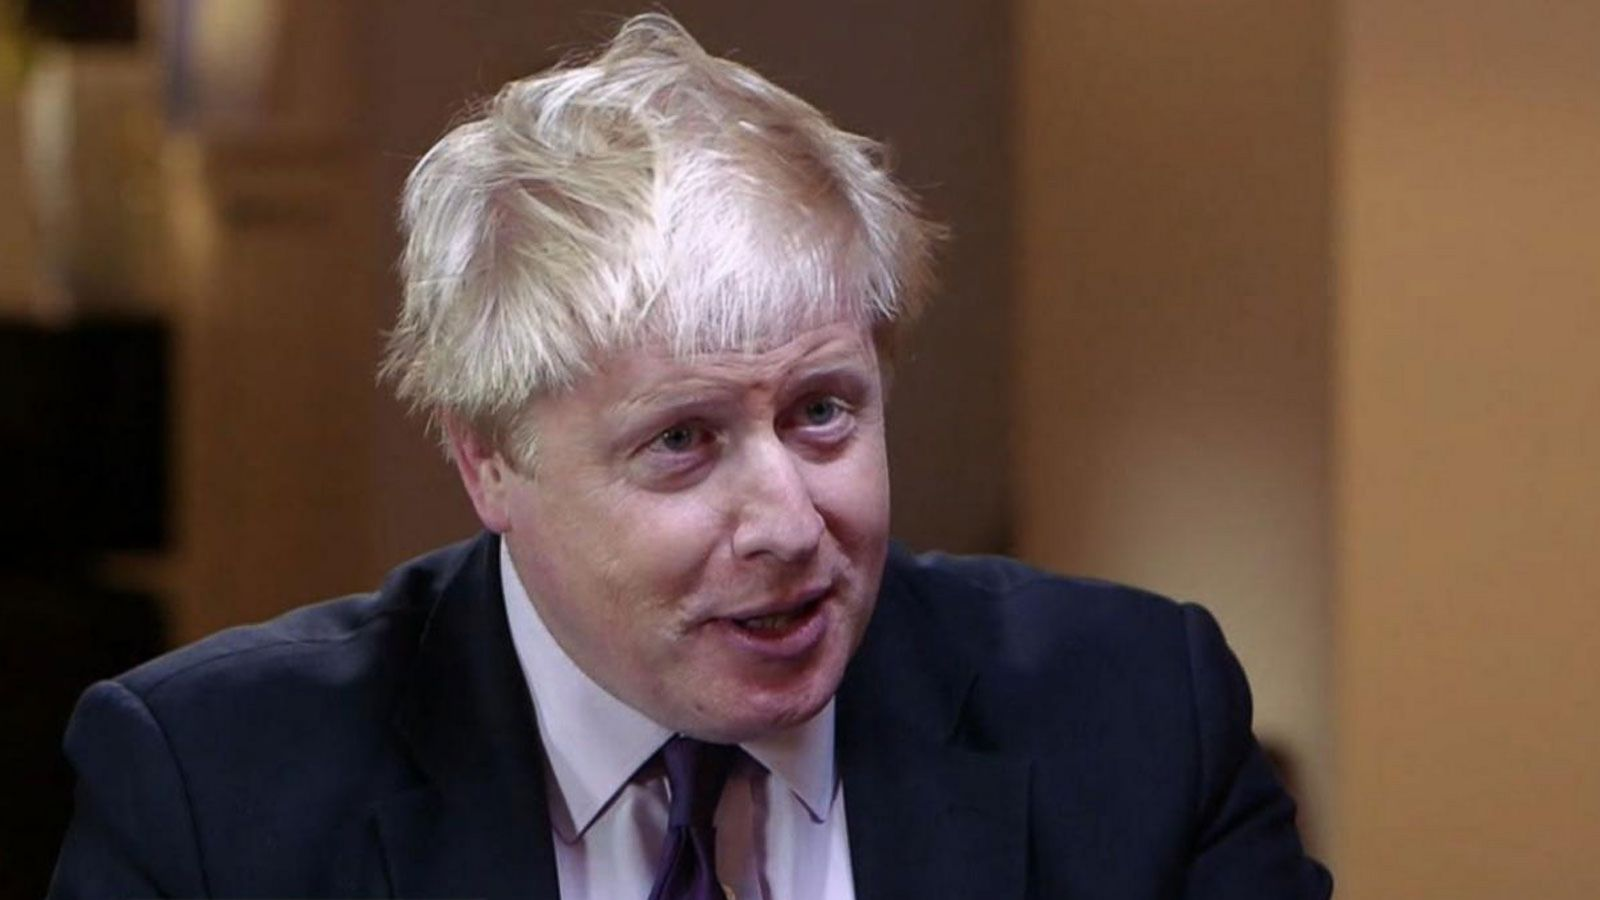 VIDEO: US and UK Left 'Door Open' to Russia in Syria, UK's Boris Johnson Says